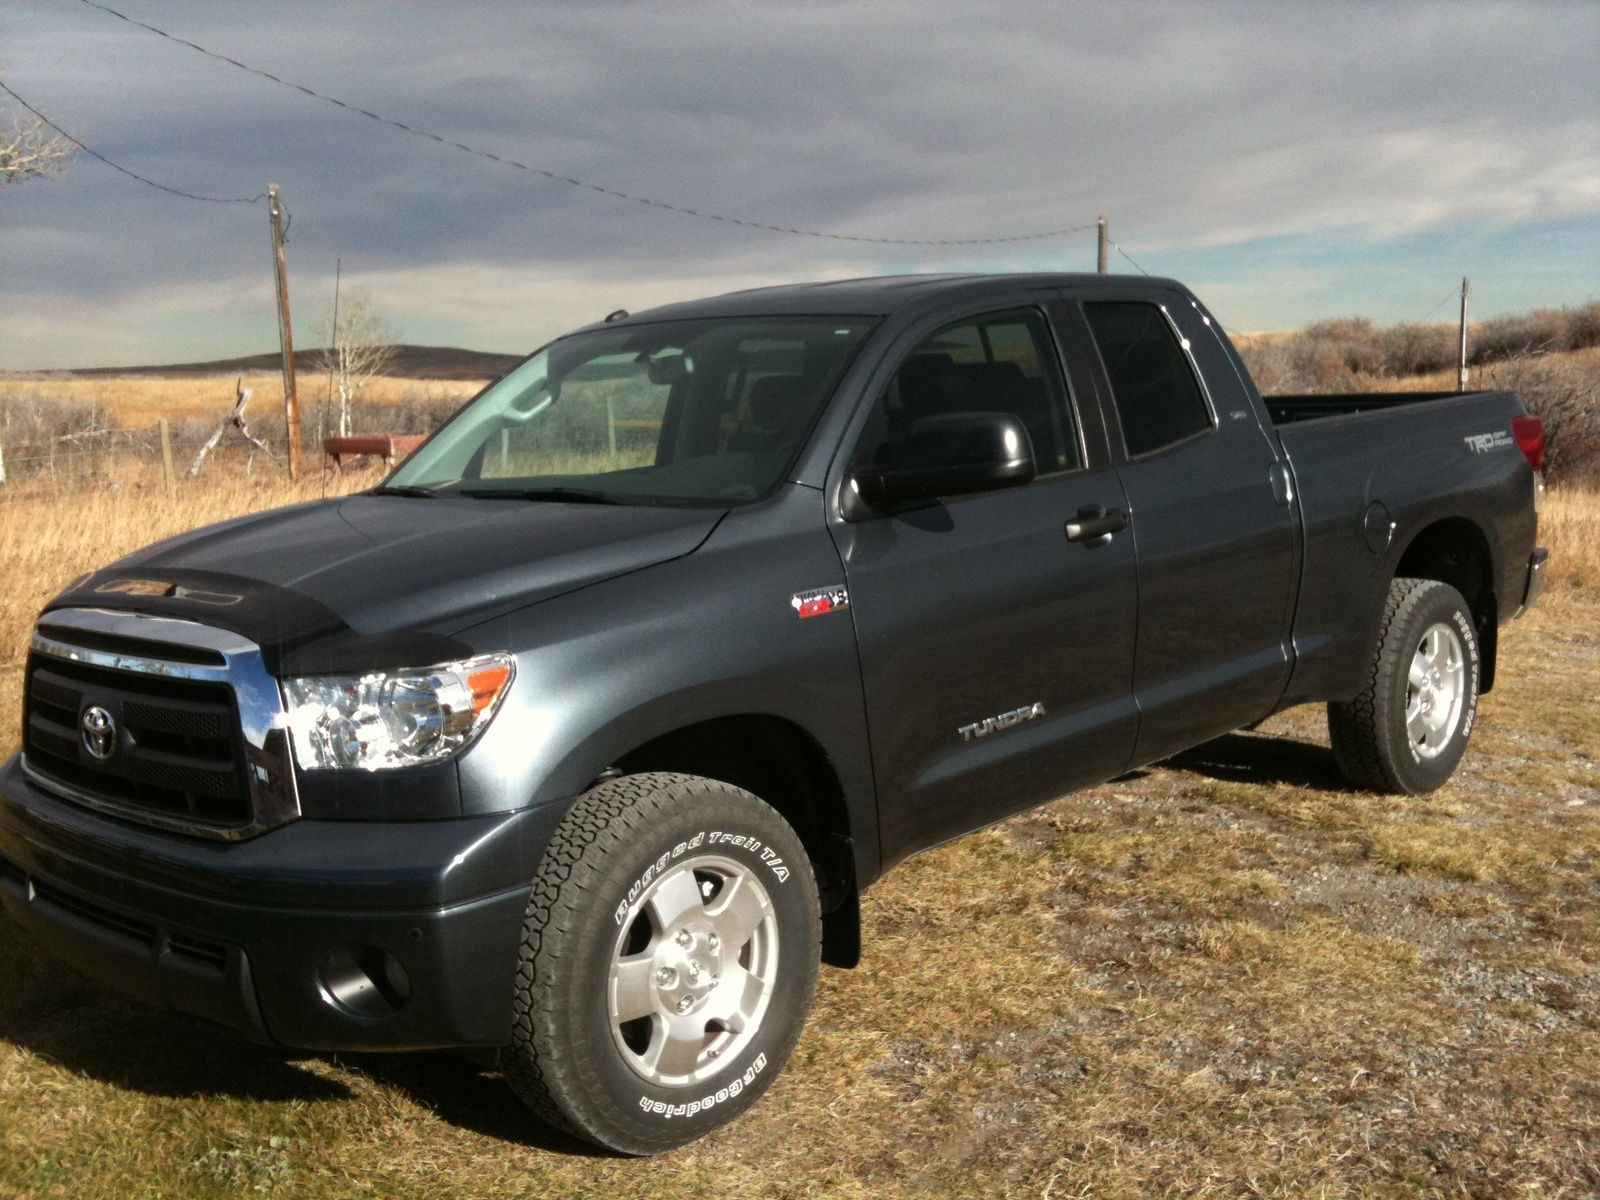 used 2010 toyota tundra crewmax for sale cargurus autos post. Black Bedroom Furniture Sets. Home Design Ideas